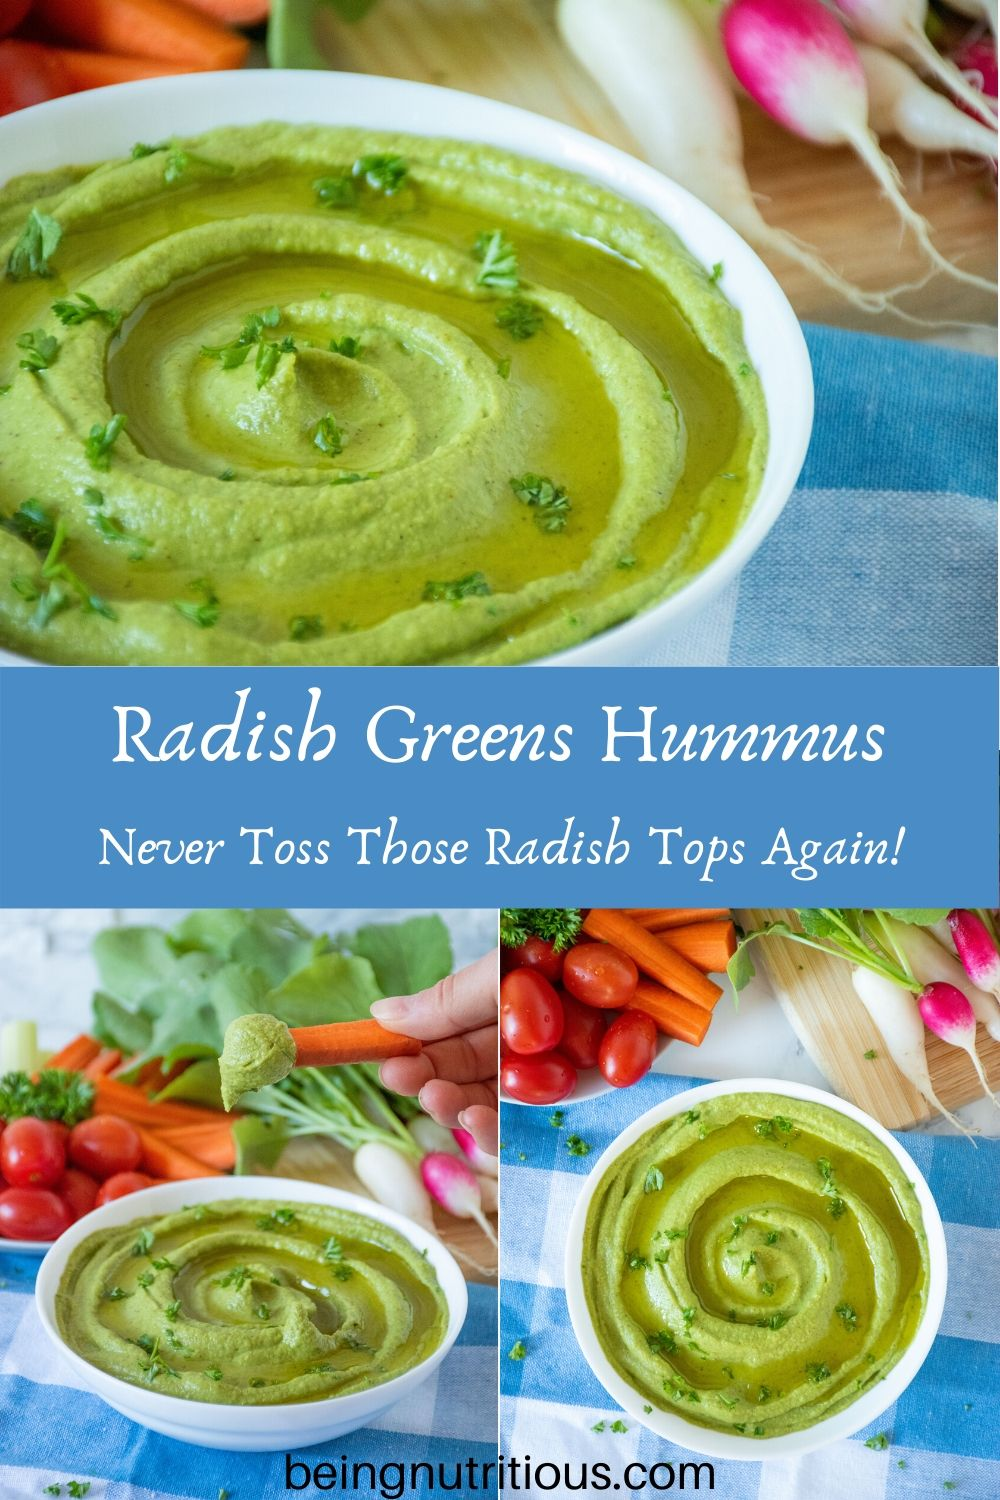 Compilation of 3 images of radish greens hummus in a white bowl, with a variety of vegetables for dipping in the background.